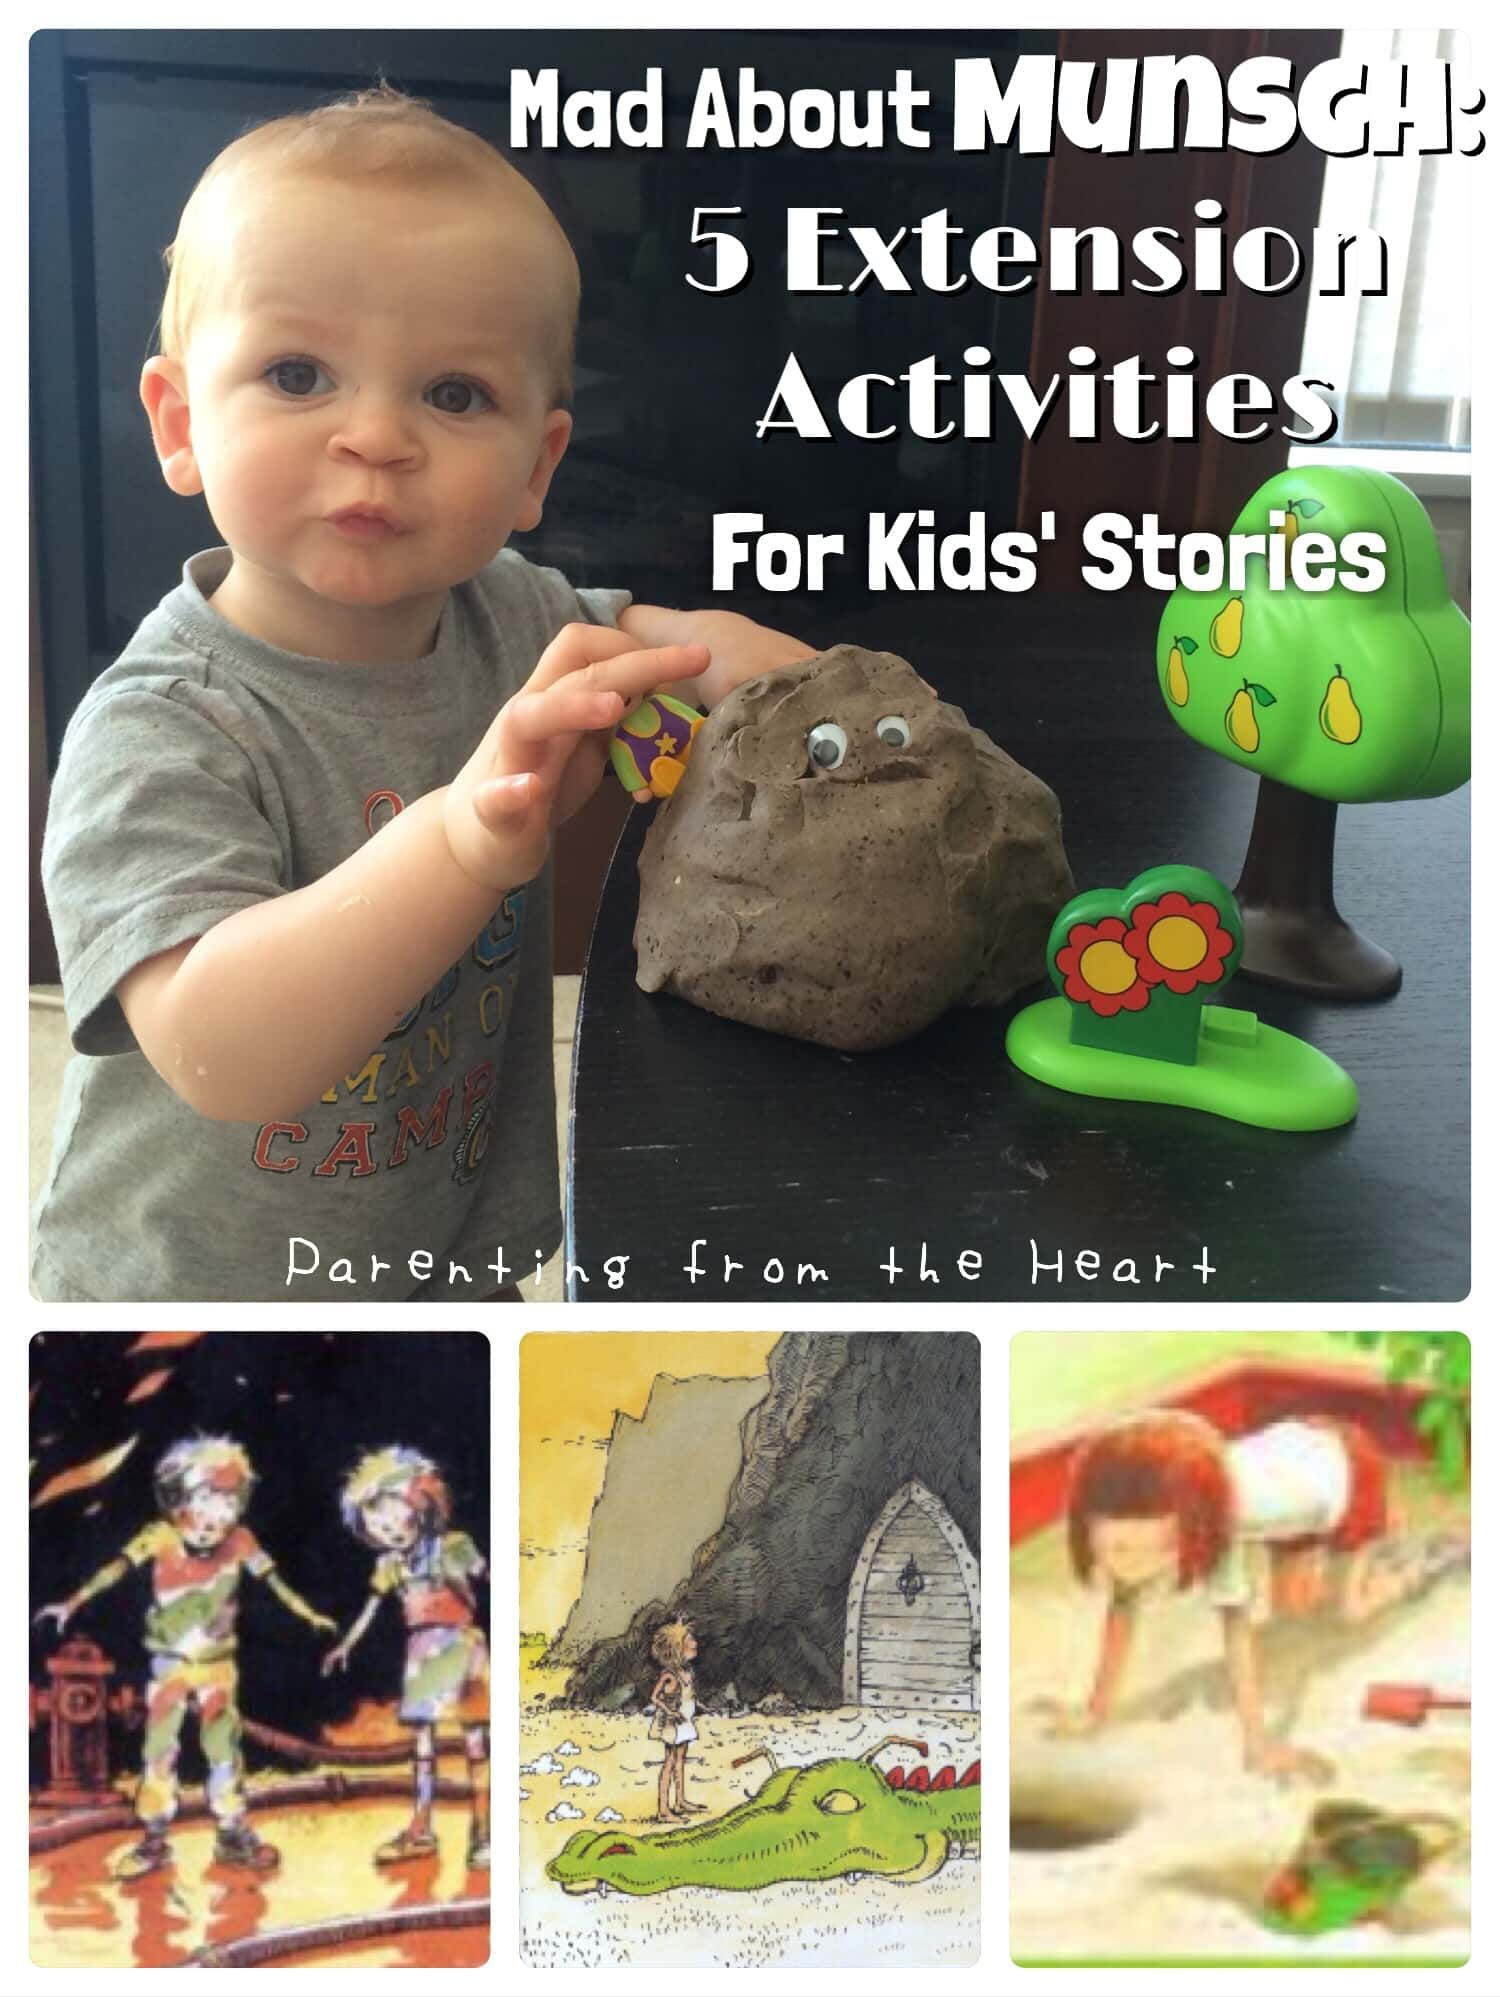 Mad About Munsch 5 Extension Activities For Kids Stories